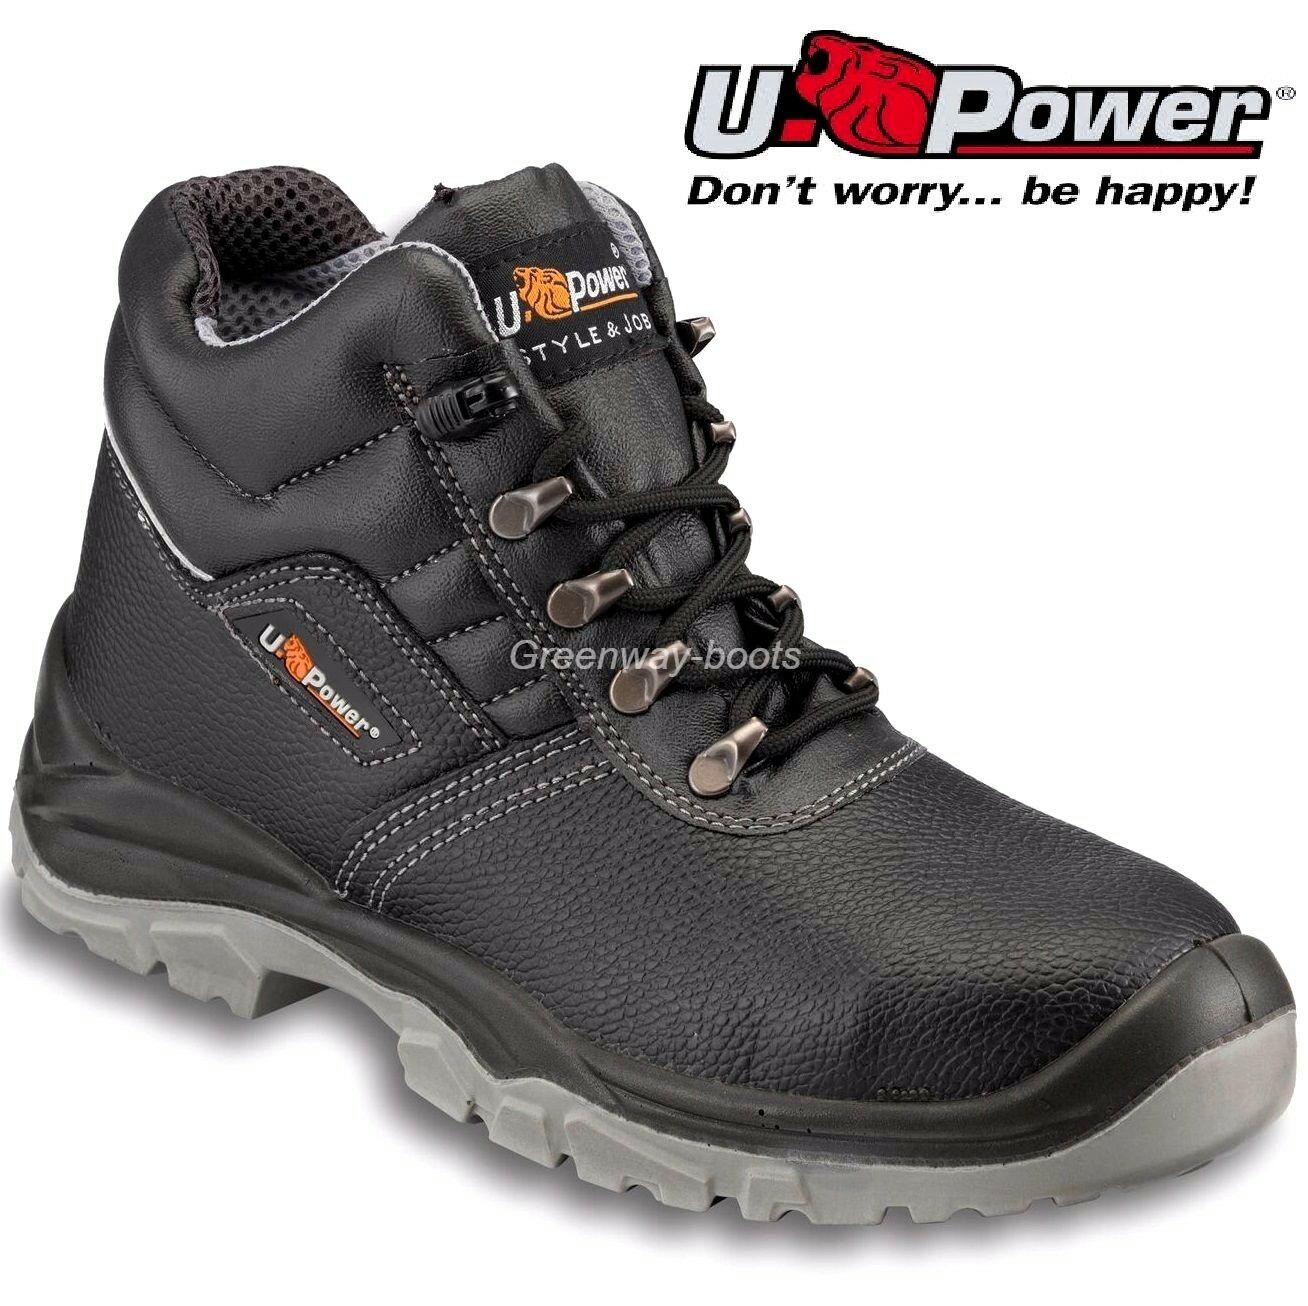 cd5f14ae951 MENS POWER LIGHTWEIGHT WATERPROOF STEEL TOE CAP SAFETY BOOTS TRAINERS U  LEATHER nomuvd141-Boots